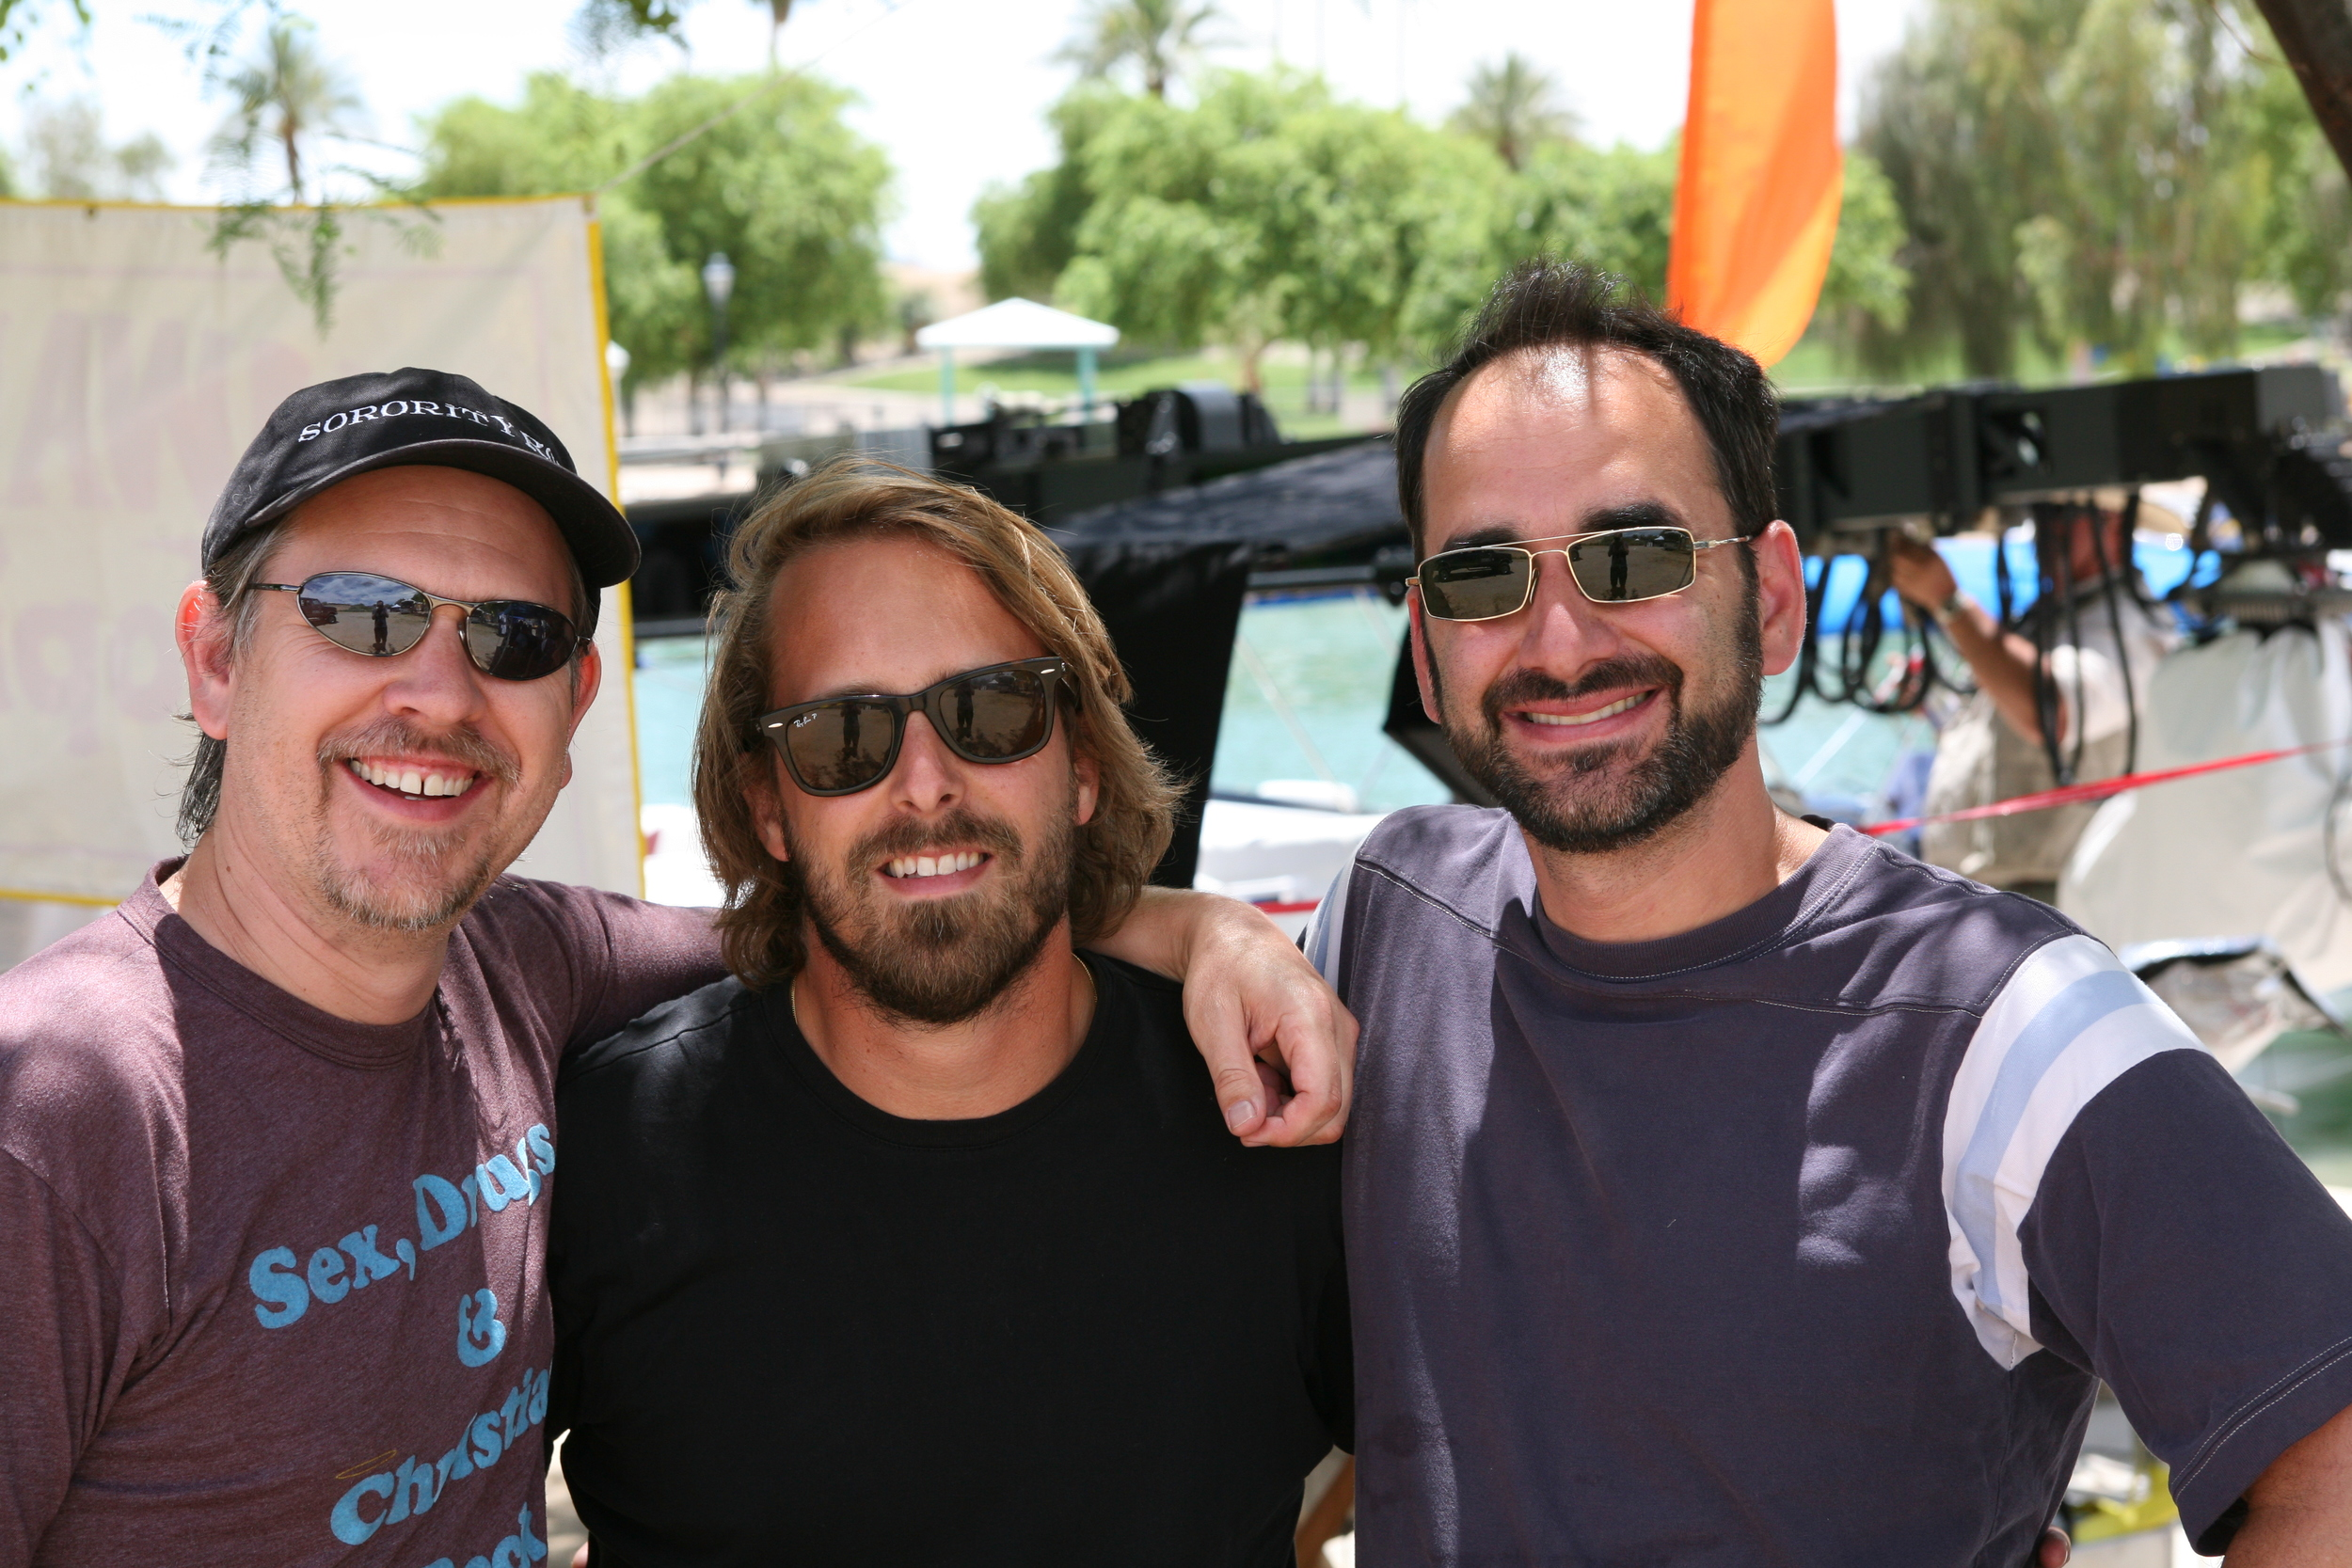 With Director Alex Aja and co-writer Pete Goldfinger on Piranha 3D